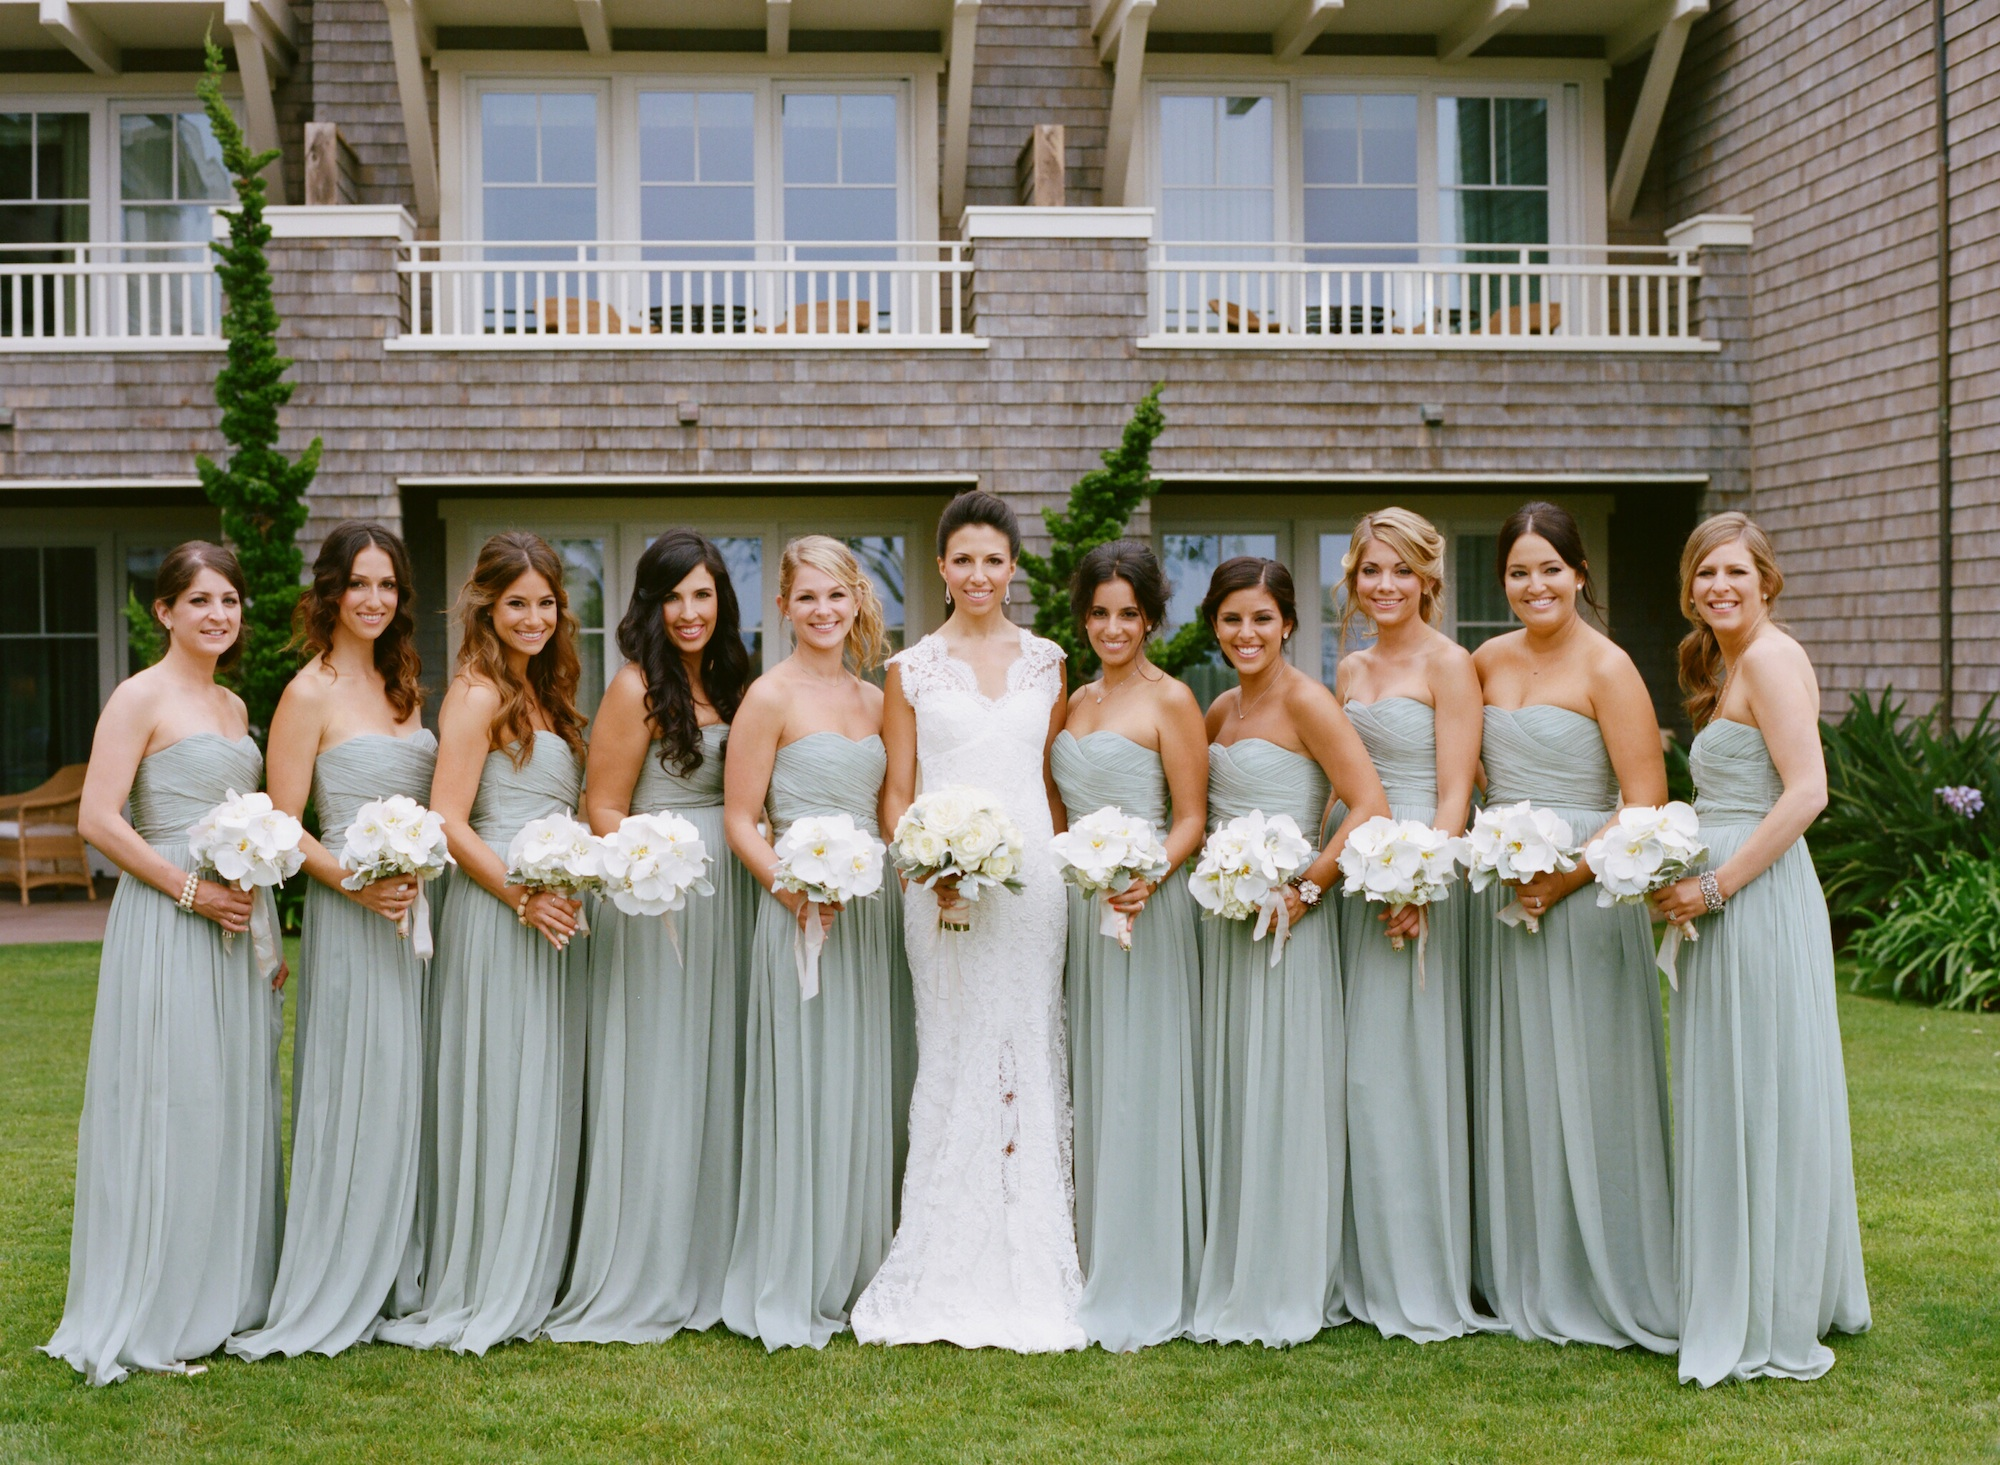 Finding The Perfect Wedding Dress (and More!) From Style